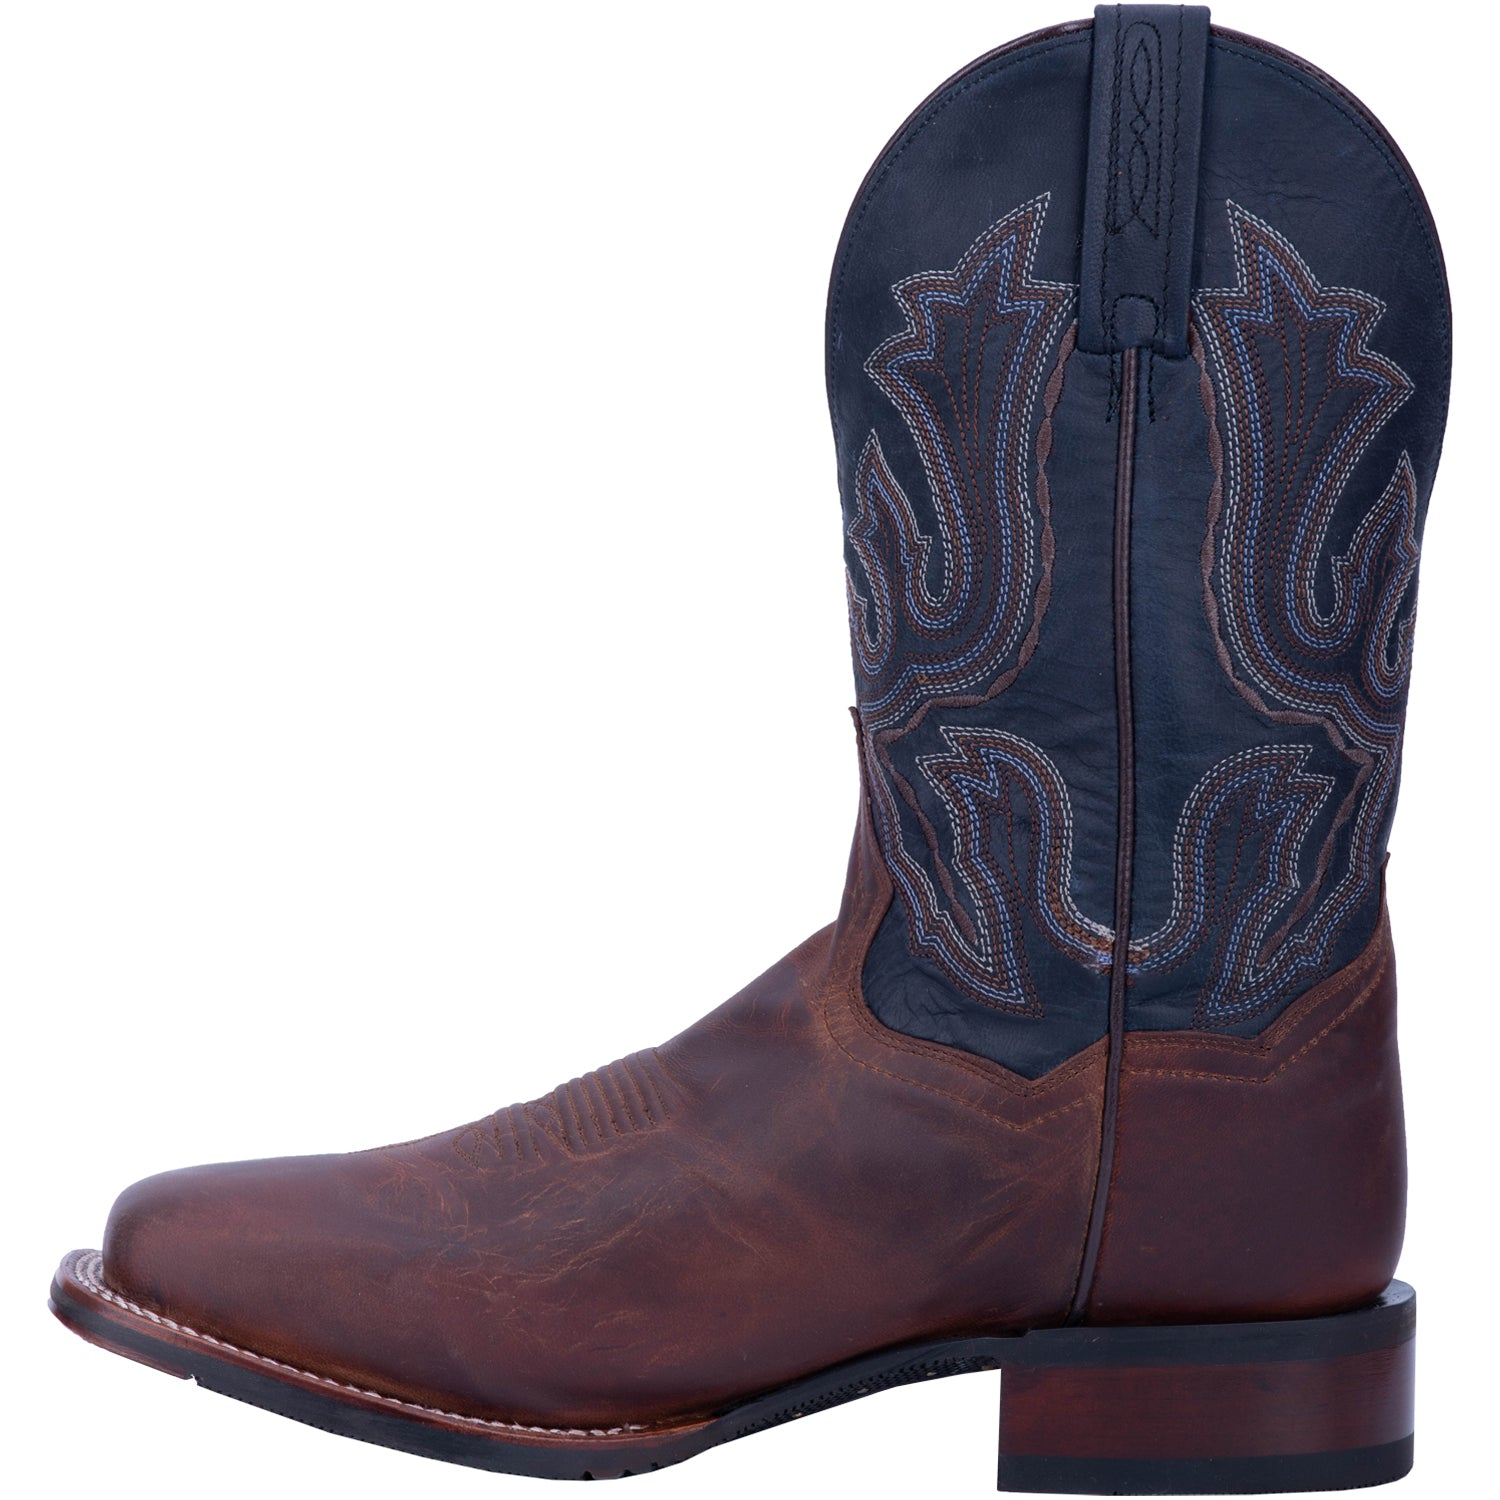 WINSLOW LEATHER BOOT 13289286238250